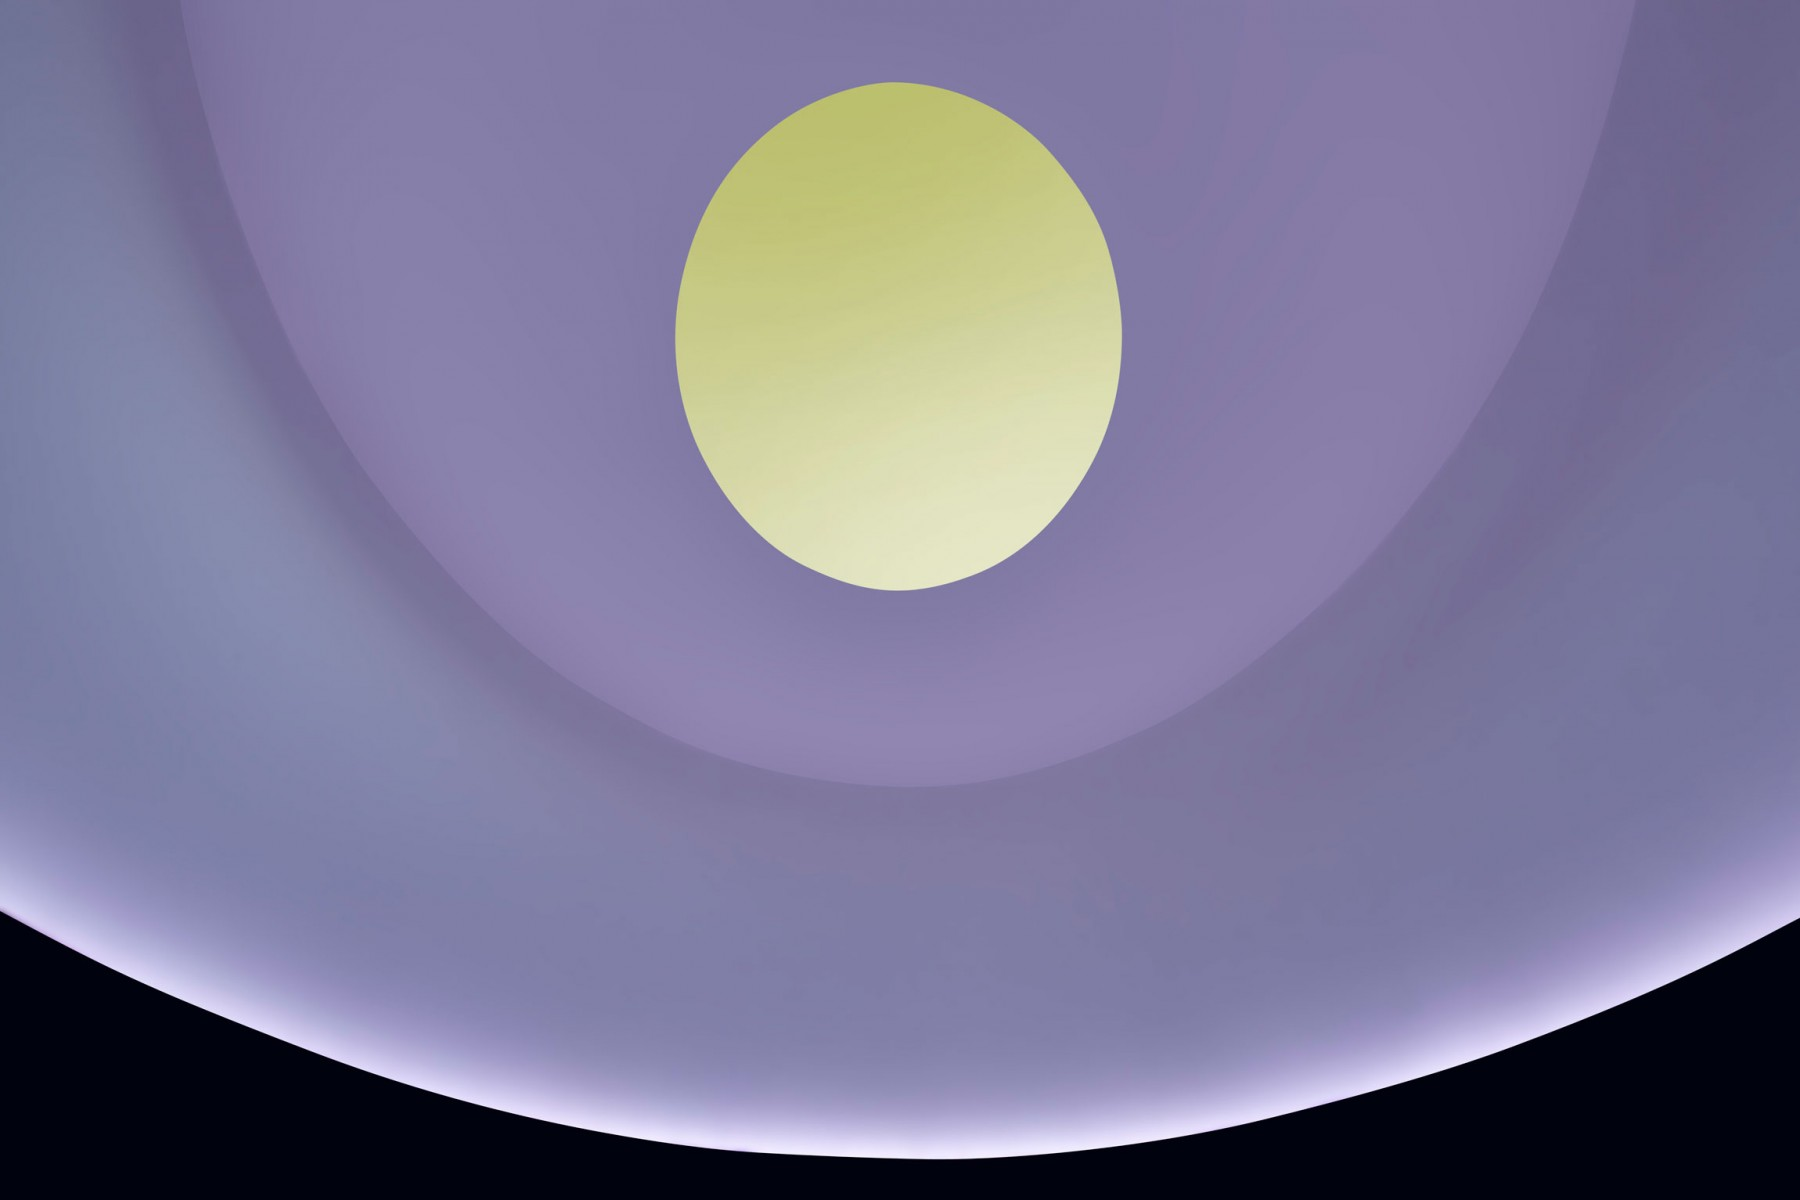 A yellow oval in a light purple circle